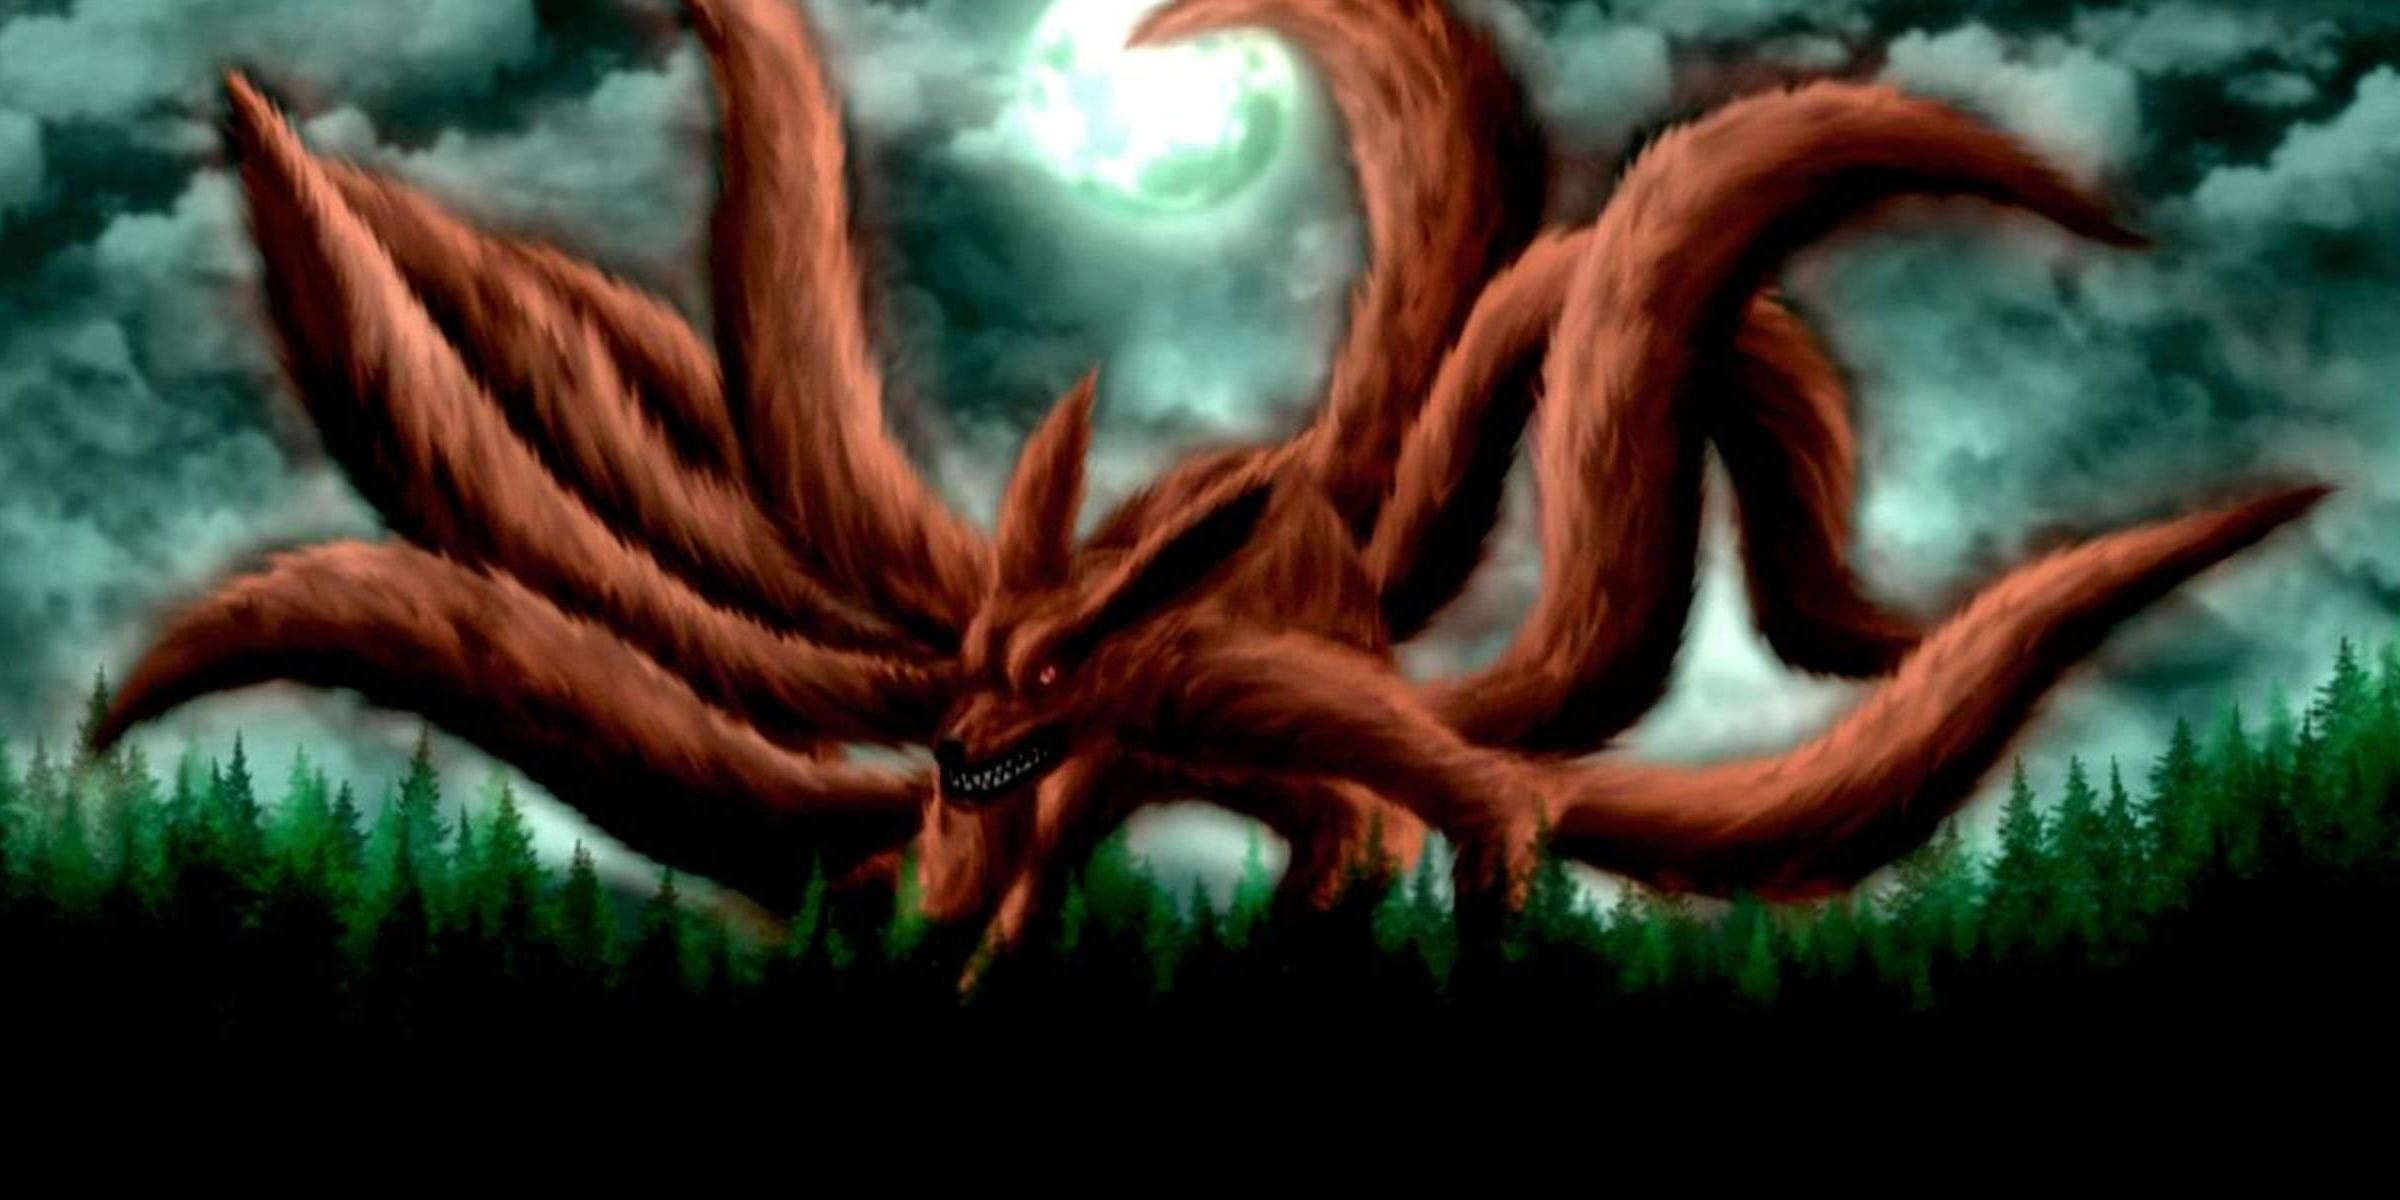 Wallpaper Smartphone Anime Naruto Nine Tailed Fox Wallpaper 183 ①